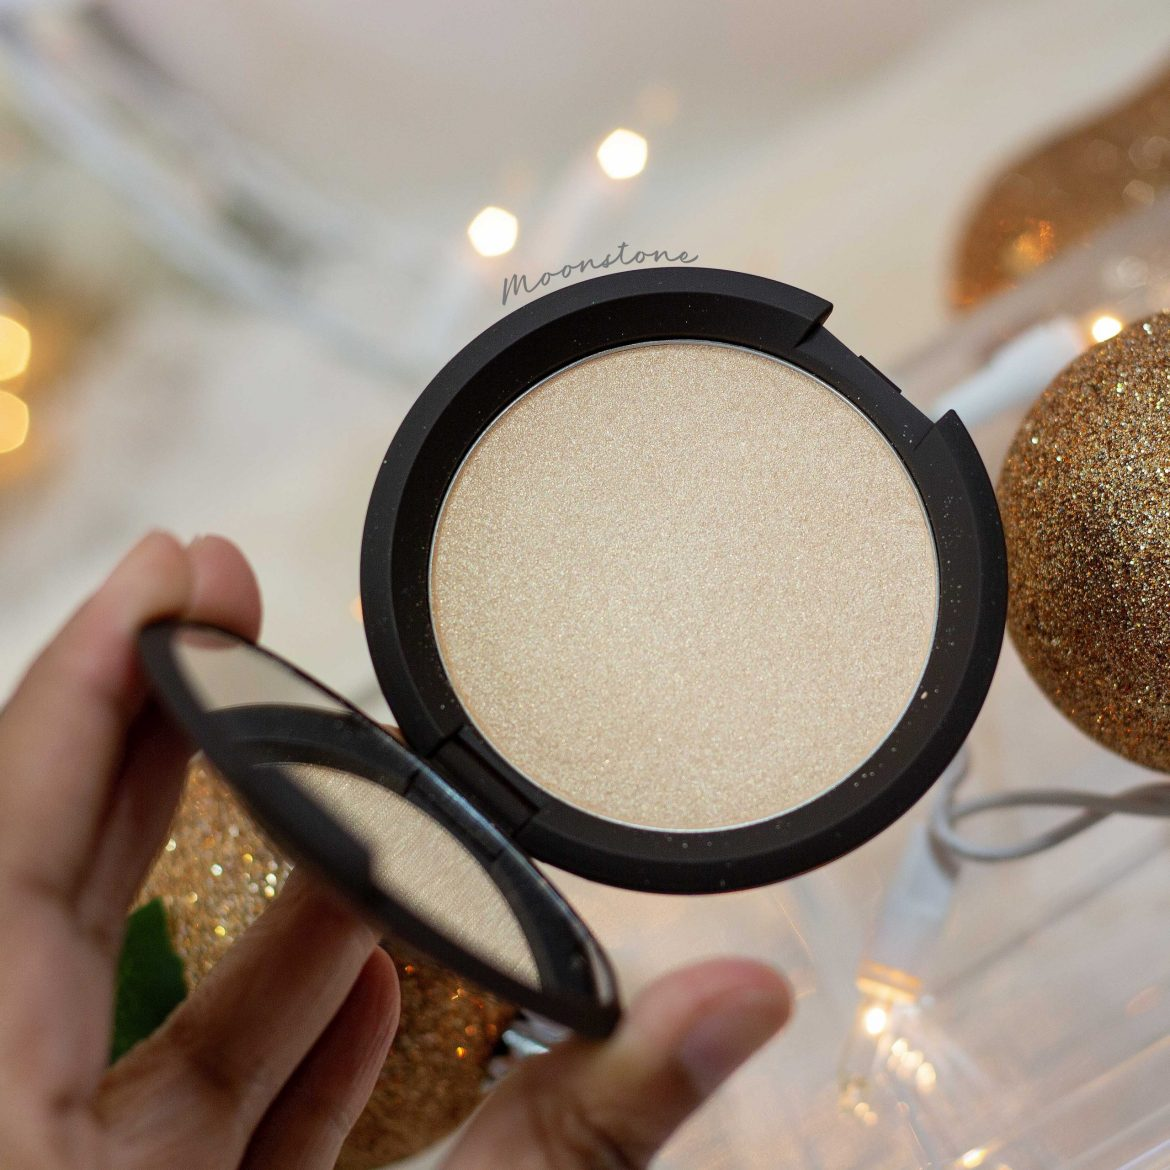 BECCA Shimmering Skin Perfector- moonstone